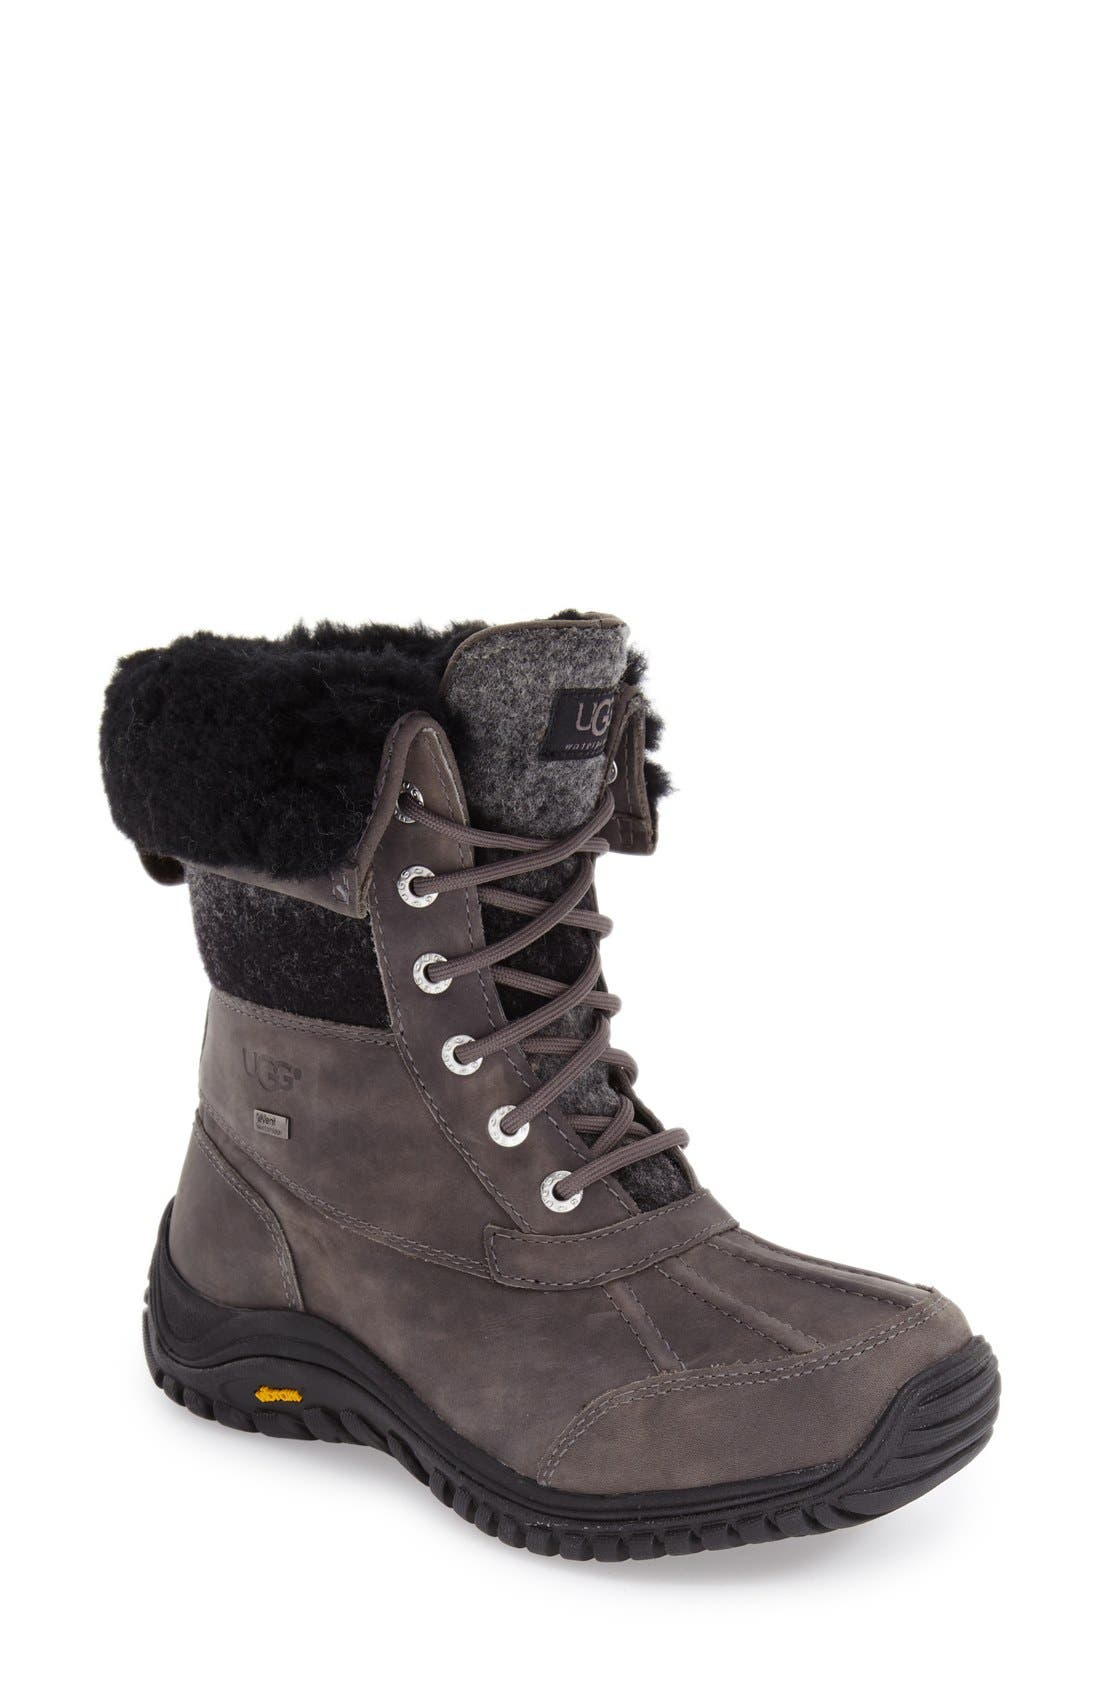 UGG<SUP>®</SUP> Adirondack Waterproof Insulated Winter Boot, Main, color, 020